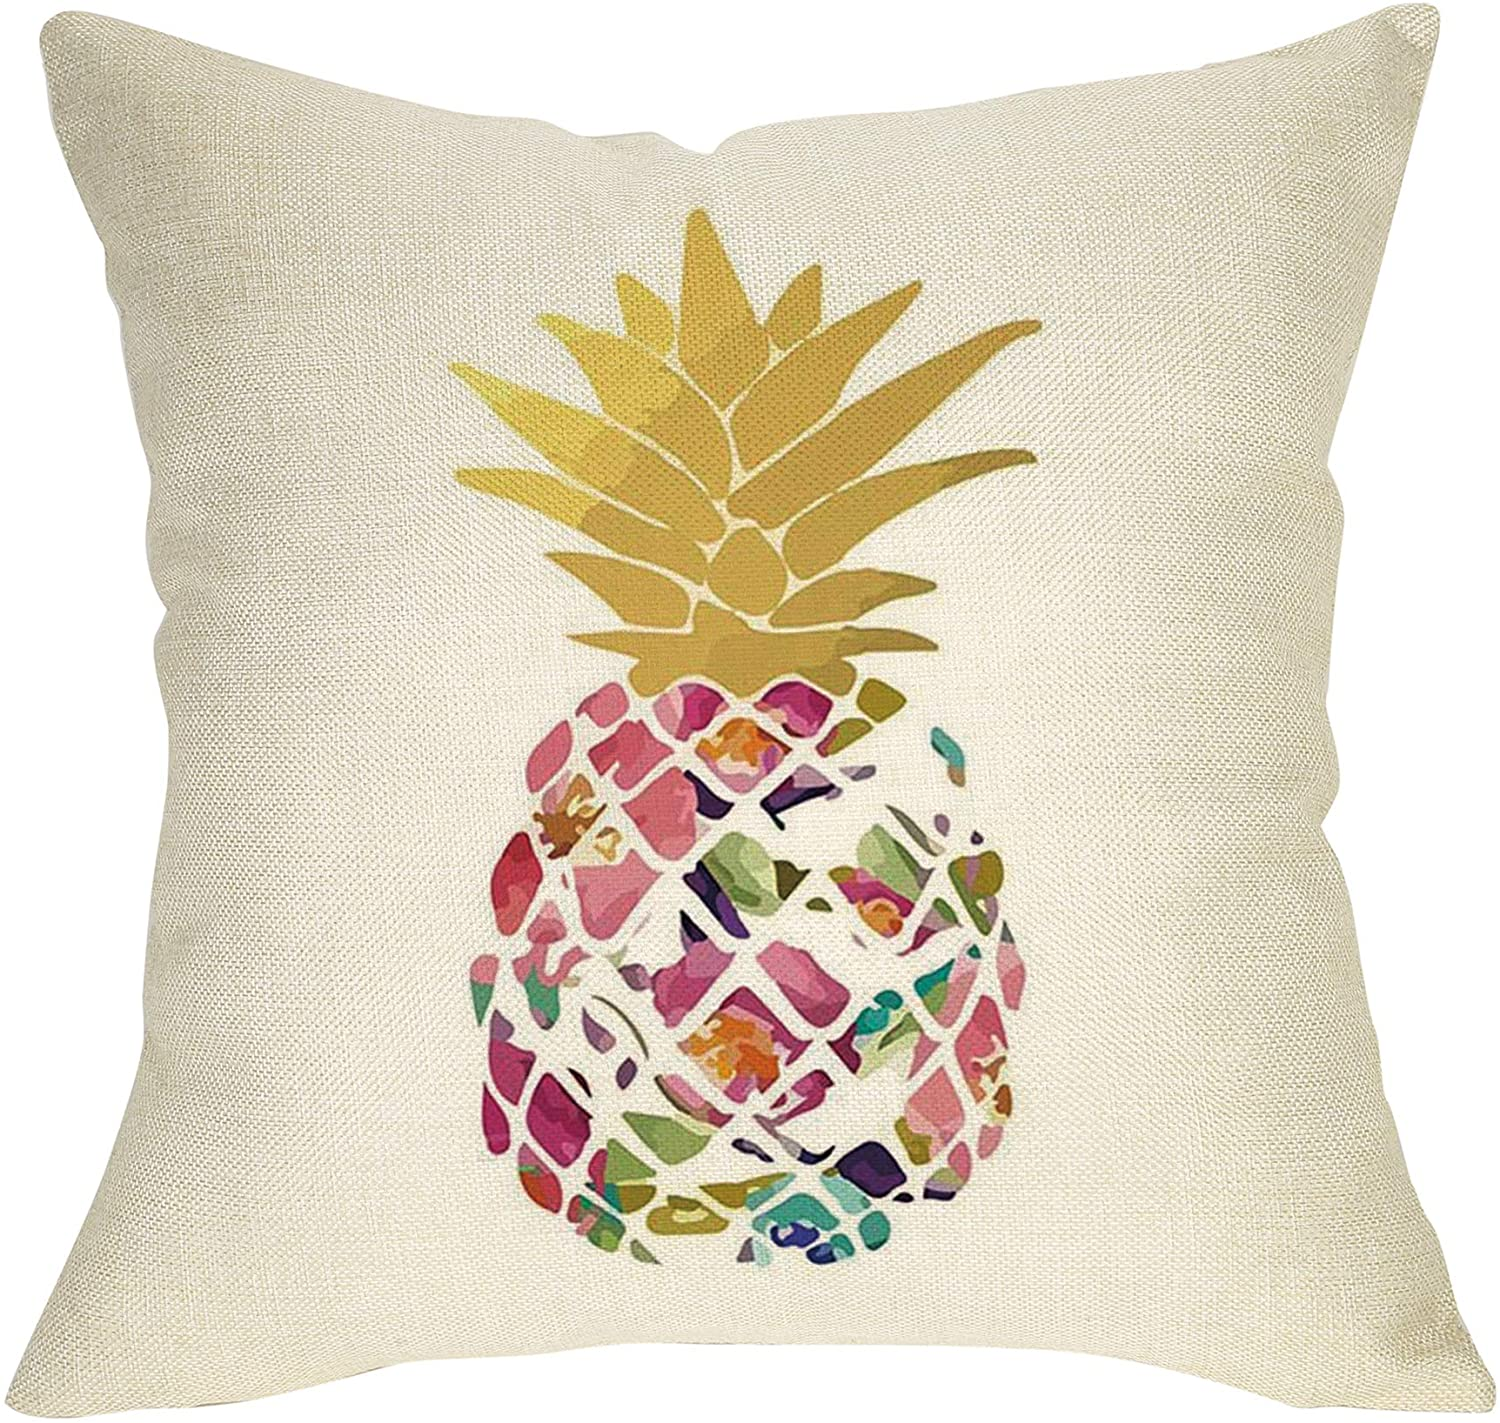 Softxpp Watercolor Floral Pineapple Decoration Spring Summer Farmhouse Throw Pillow Cover Rose Sign Home Decor Cushion Case Decorative for Sofa Couch 18